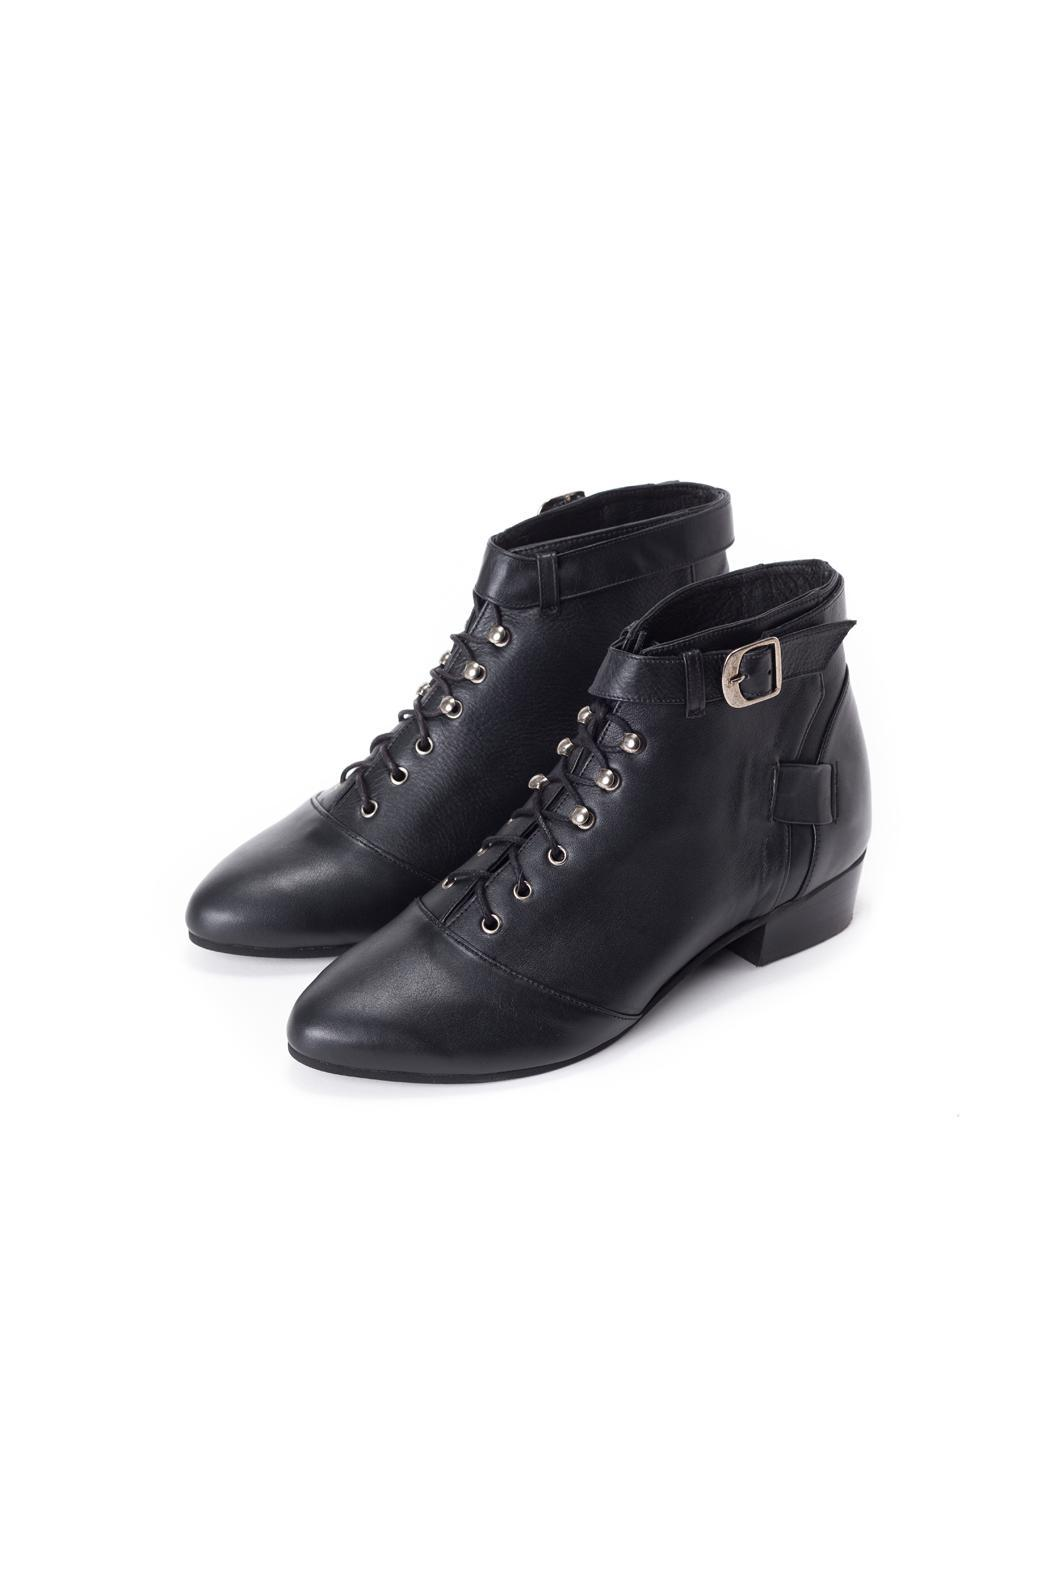 Olive Thomas Black Pixie Boots from Tel